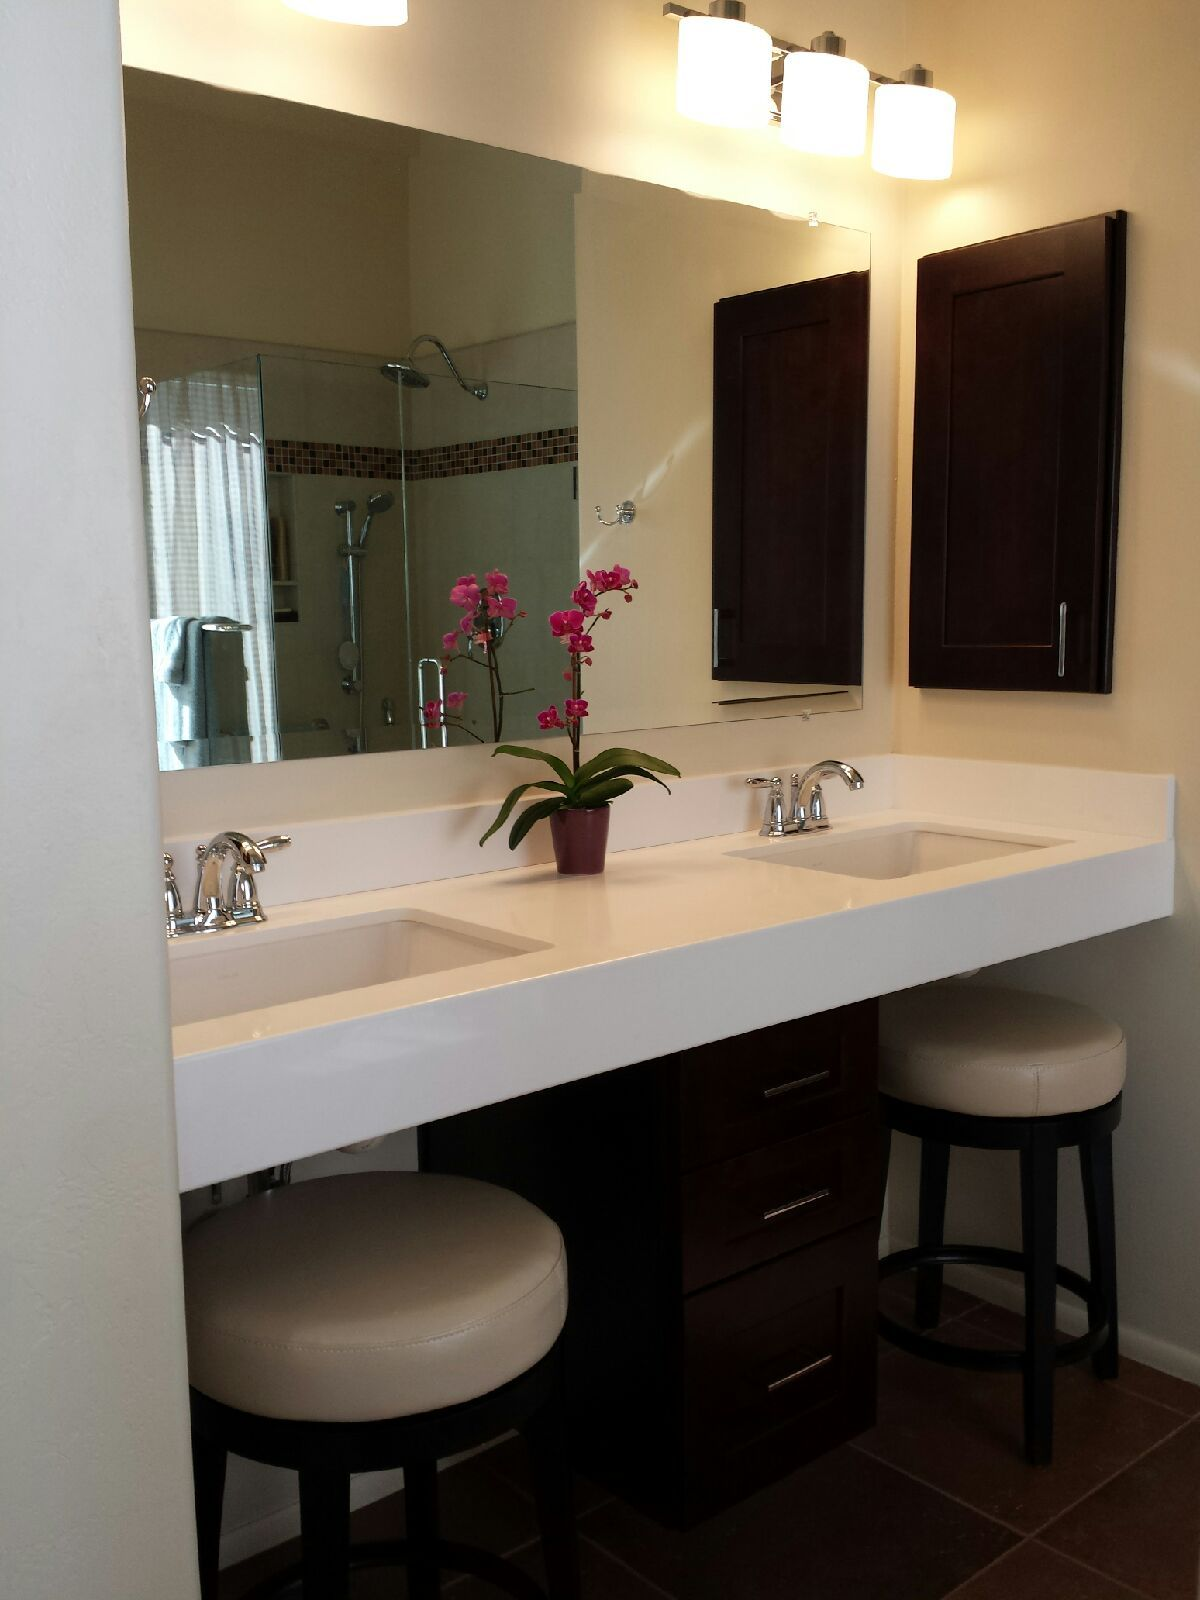 Master bath vanity with ada accessible roll under style - Bathroom vanity under sink organizer ...